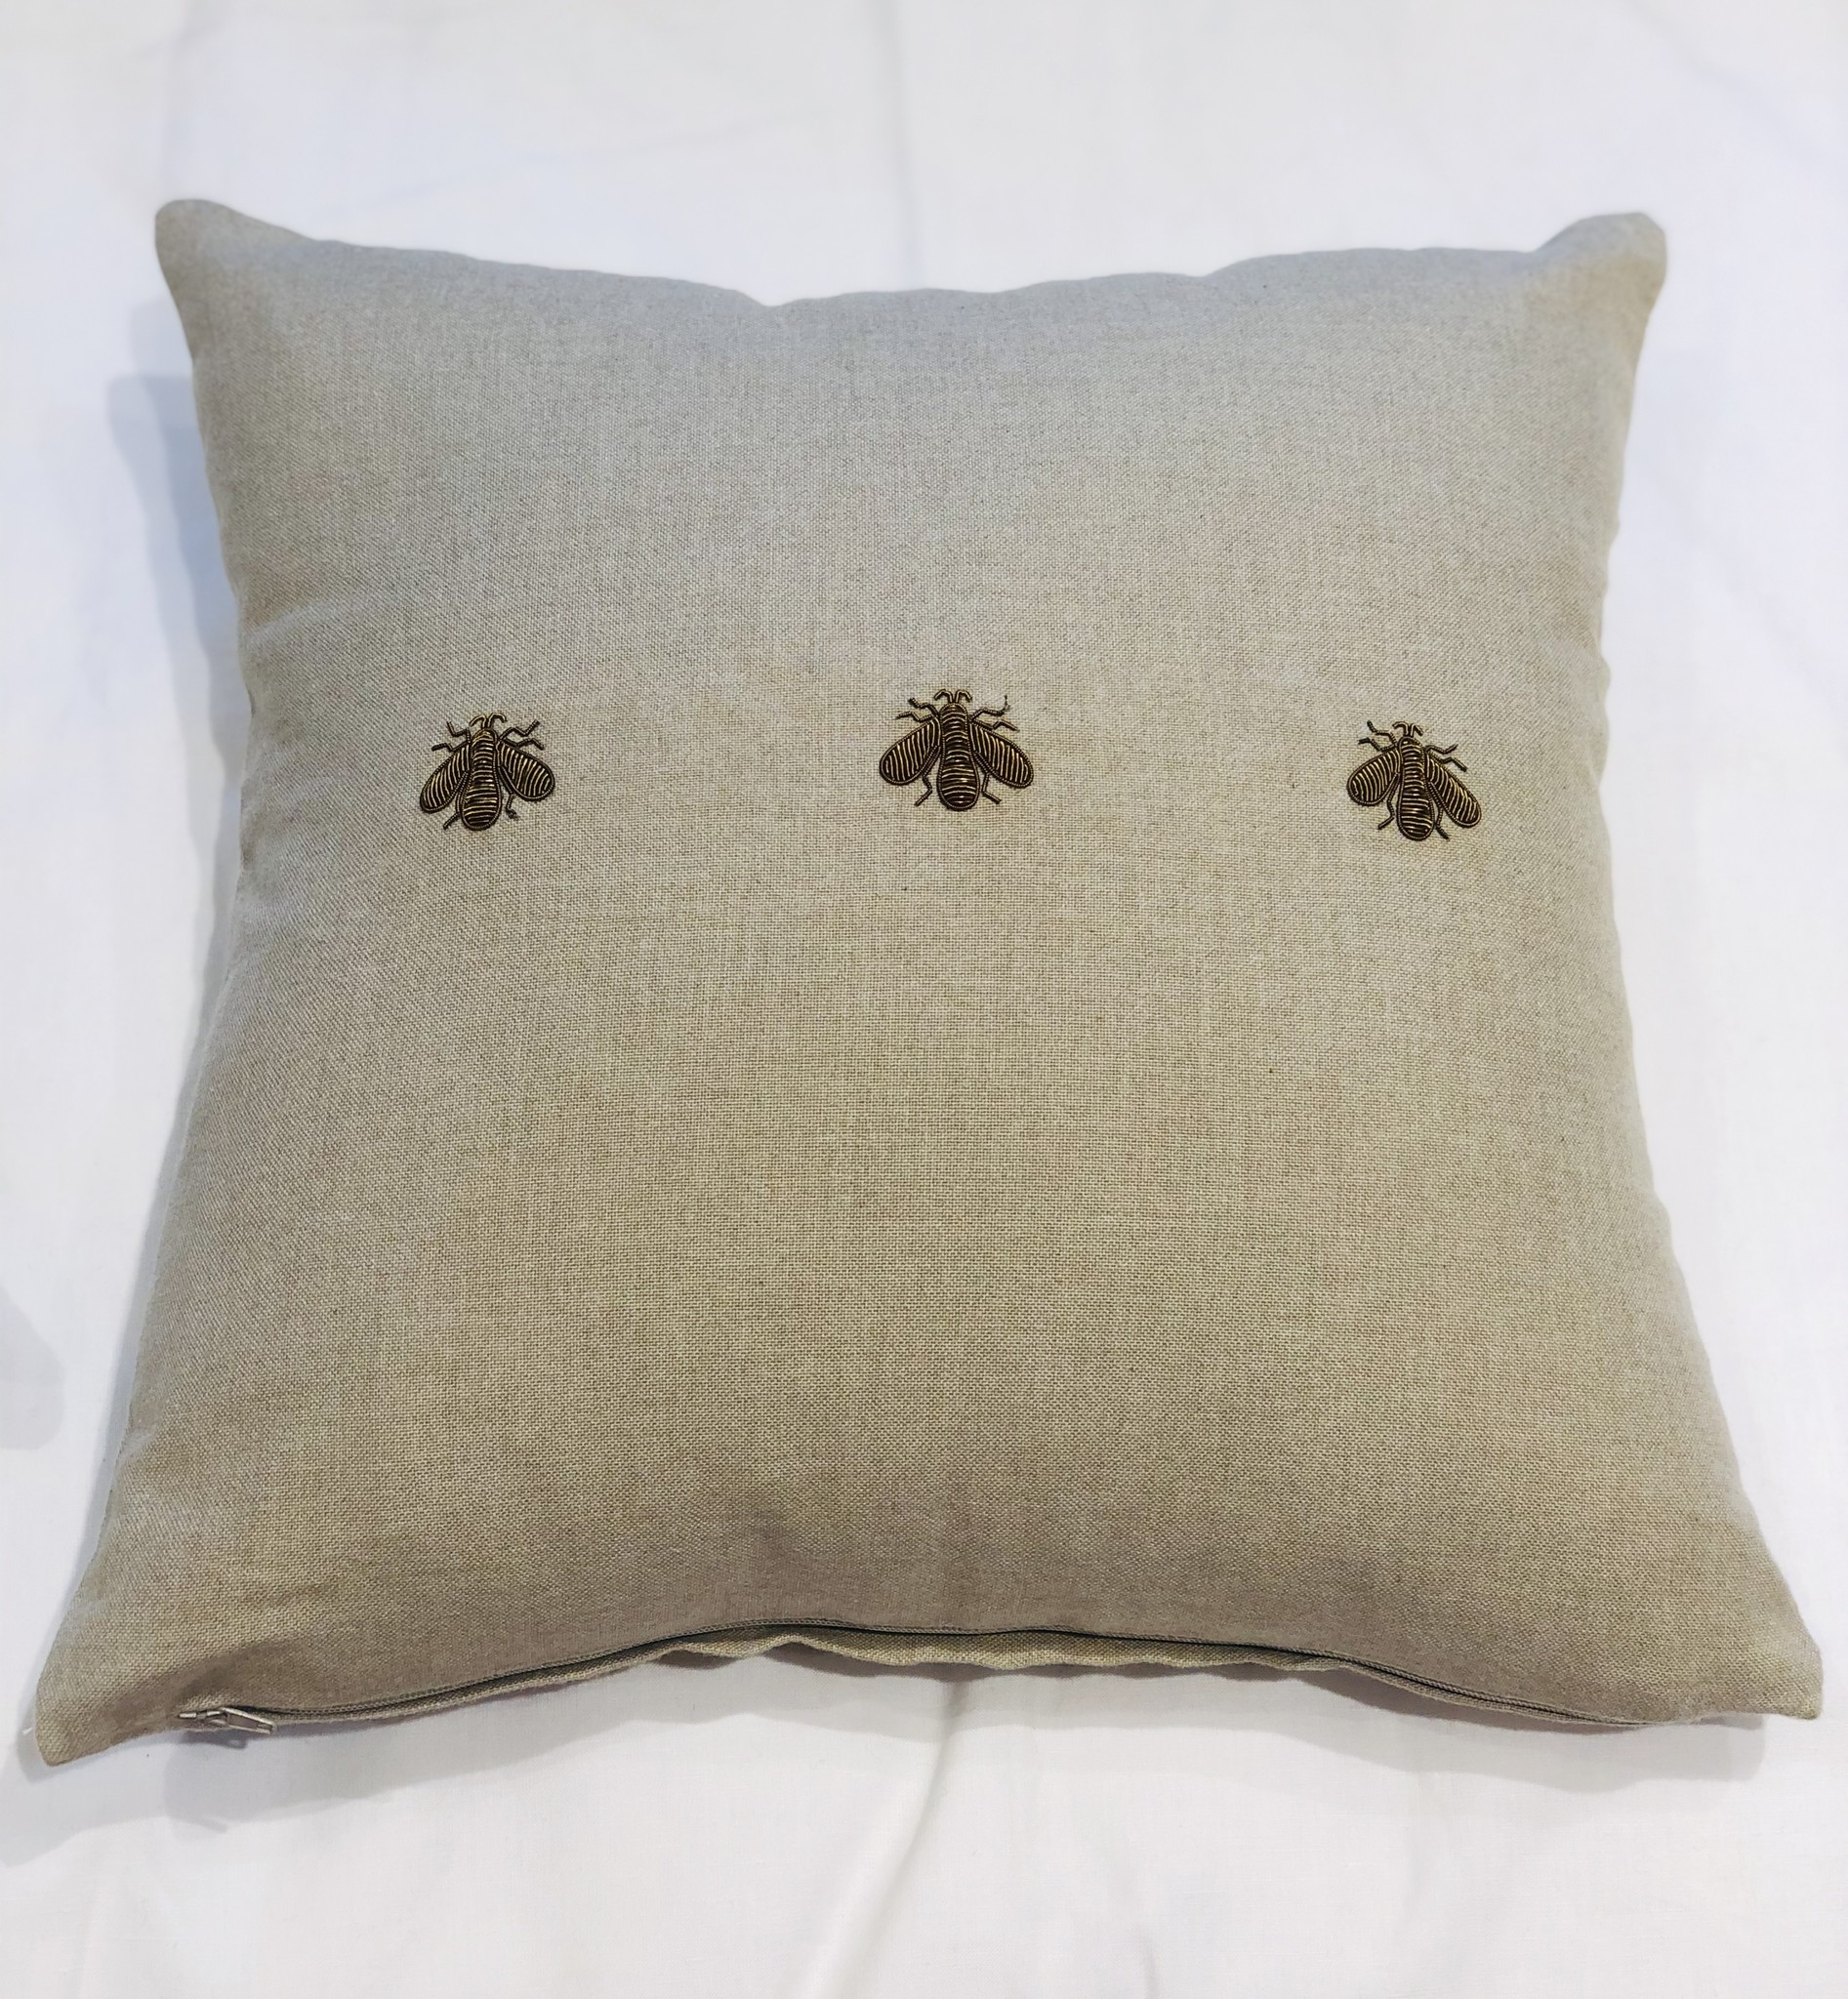 Cushion (Set of 2) - Bees - Natural-2